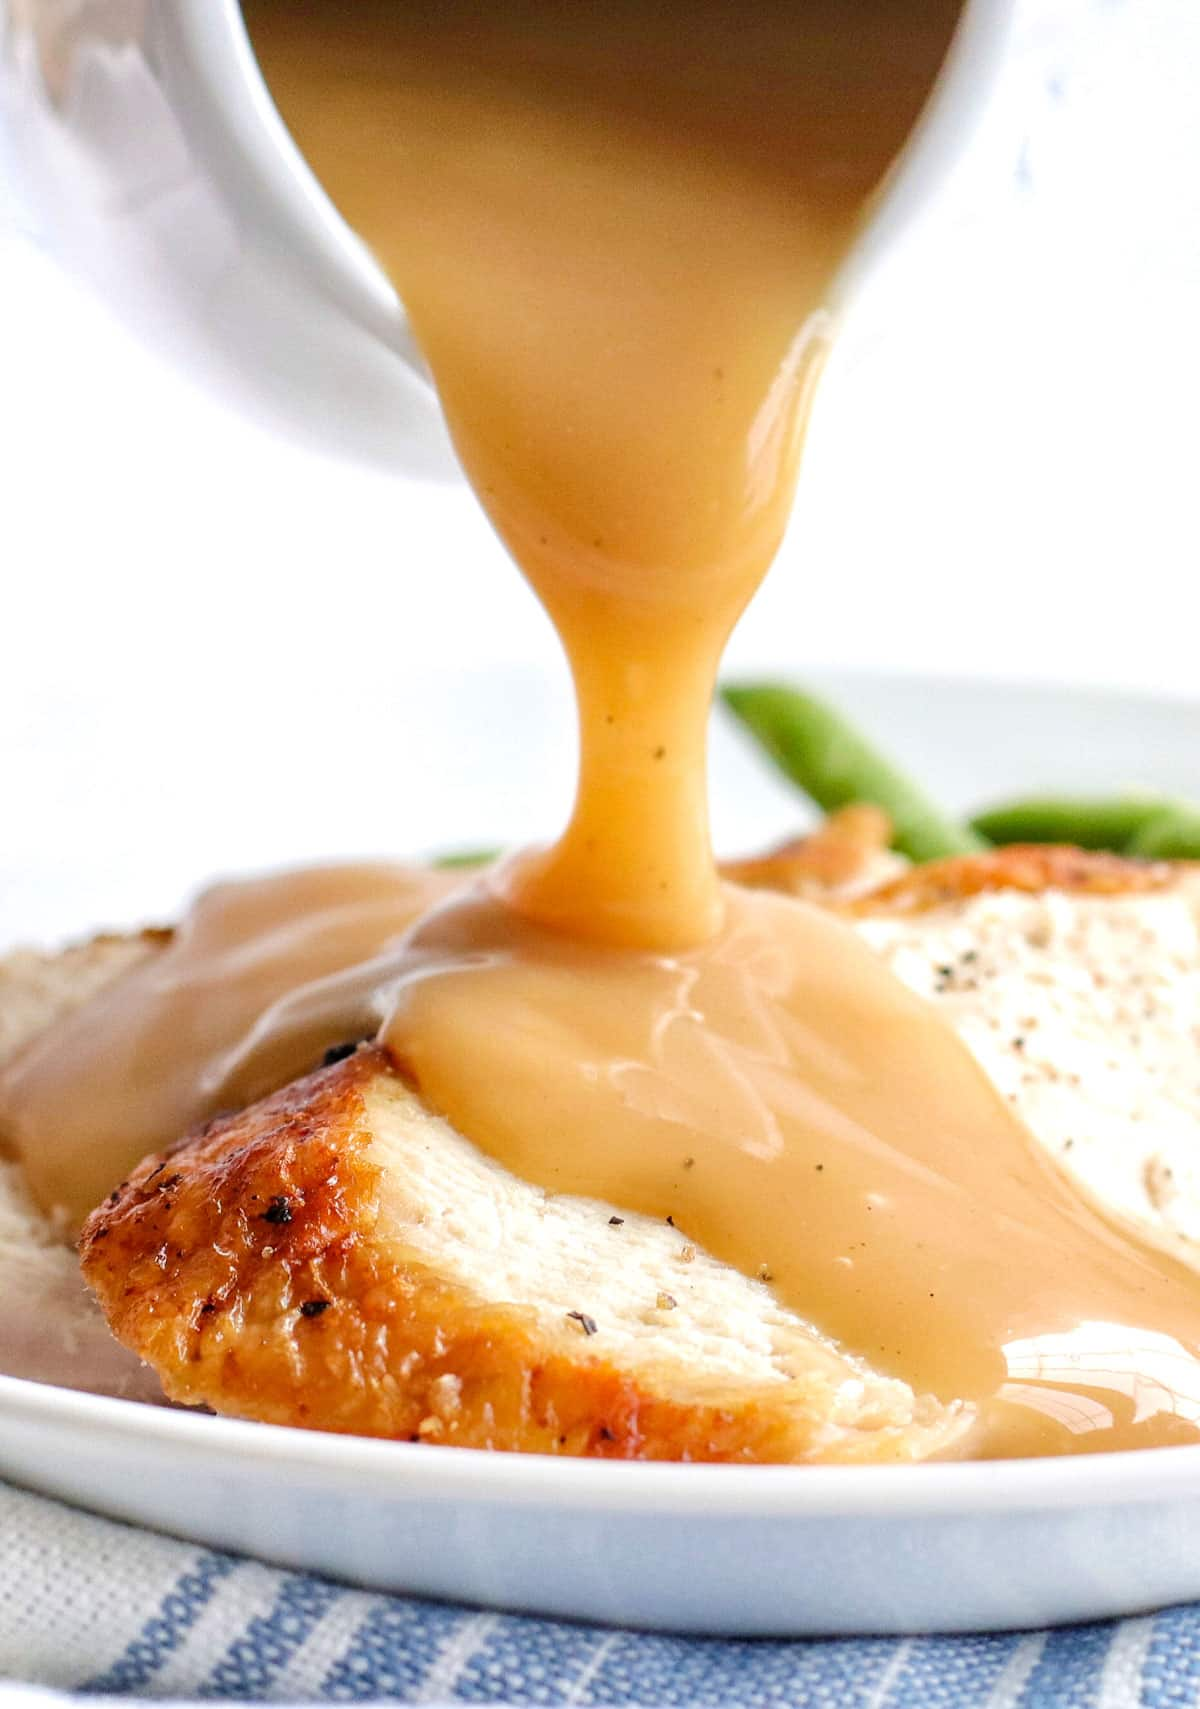 air fryer turkey breast slices with brown turkey gravy pouring over them